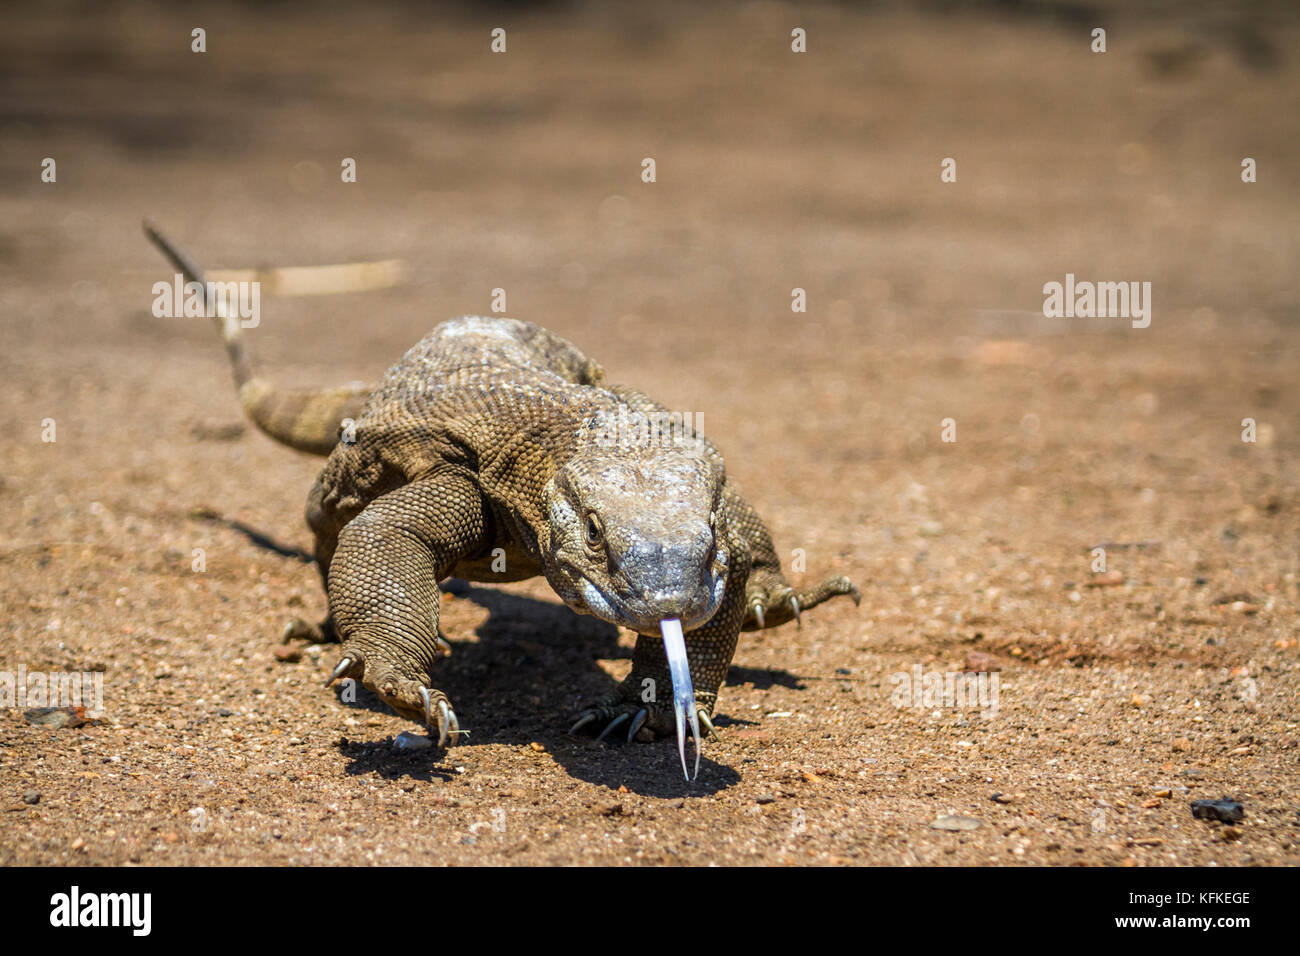 Nile monitor lizard in Kruger national park, South Africa ; Specie Varanus niloticus family of varanidae Stock Photo